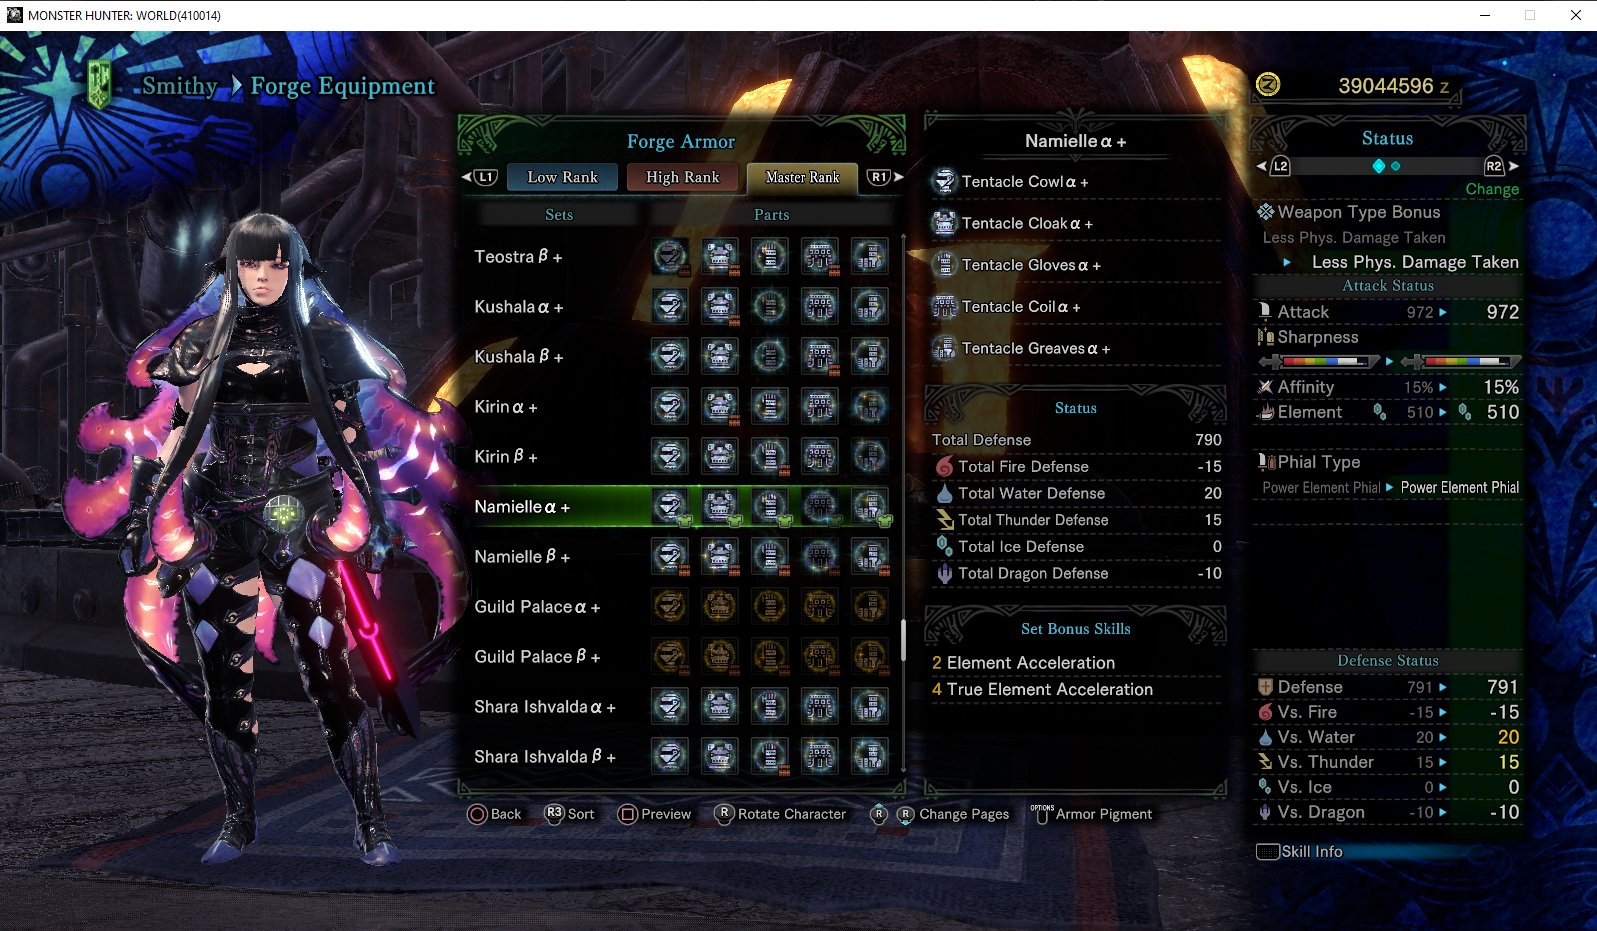 Namielle Y At Monster Hunter World Mods And Community Namielle alpha + armor set in monster hunter world (mhw) iceborne is a master rank armor set added with the expansion. namielle y at monster hunter world